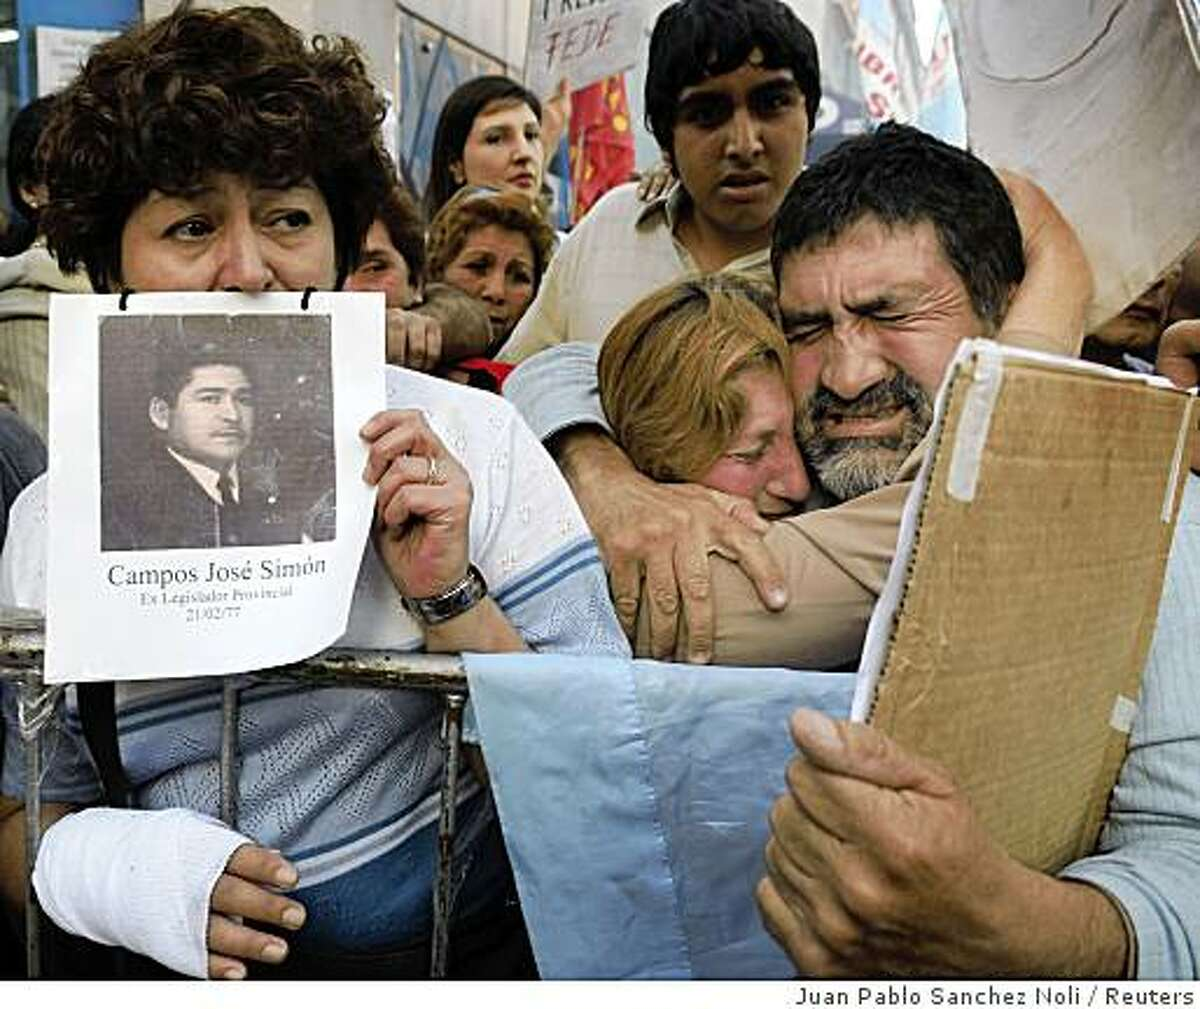 """Human rights activists react outside the courtroom after hearing the verdict that condemned former Argentine Army Gen. Antonio Domingo Bussi to life imprisonment over the disappearance of a provincial senator during the 1976-1983 """"Dirty War"""" dictatorship, in the northern province of Tucuman, August 28, 2008. Bussi, 82, who wept during Thursday's hearing, built a political career after democracy returned to Argentina in 1983 and was elected in 1995 as governor of Tucuman, a sugar- and citrus-growing province that is among the country's poorest. REUTERS/Juan Pablo Sanchez Noli (ARGENTINA)"""